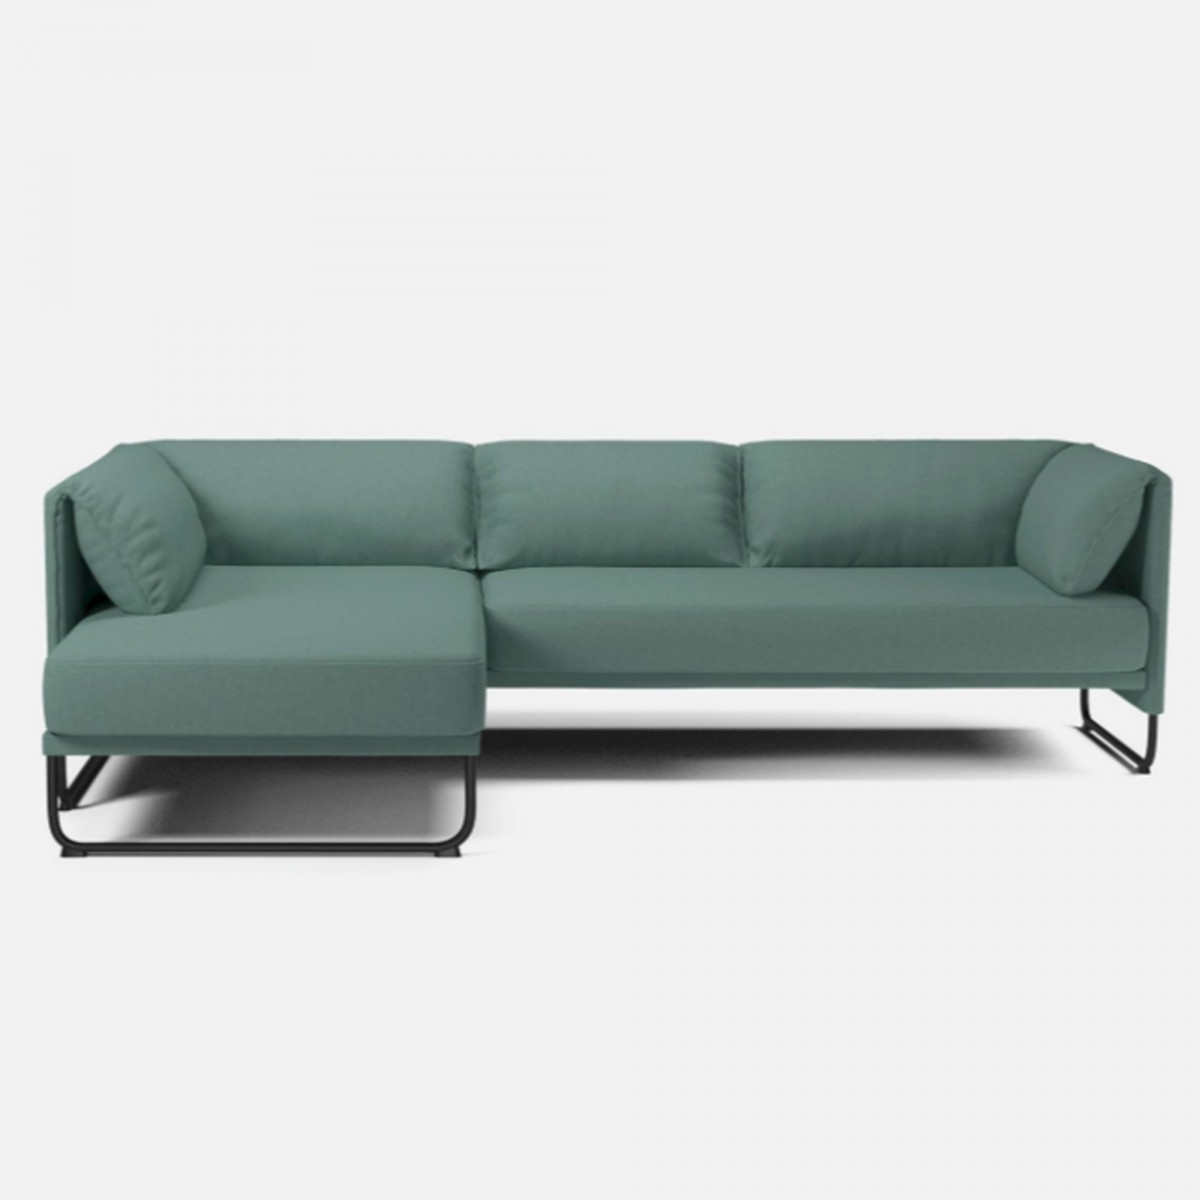 Mara sofa 3 seats with chaise longue bolia - Sofa rinconera con chaise longue ...